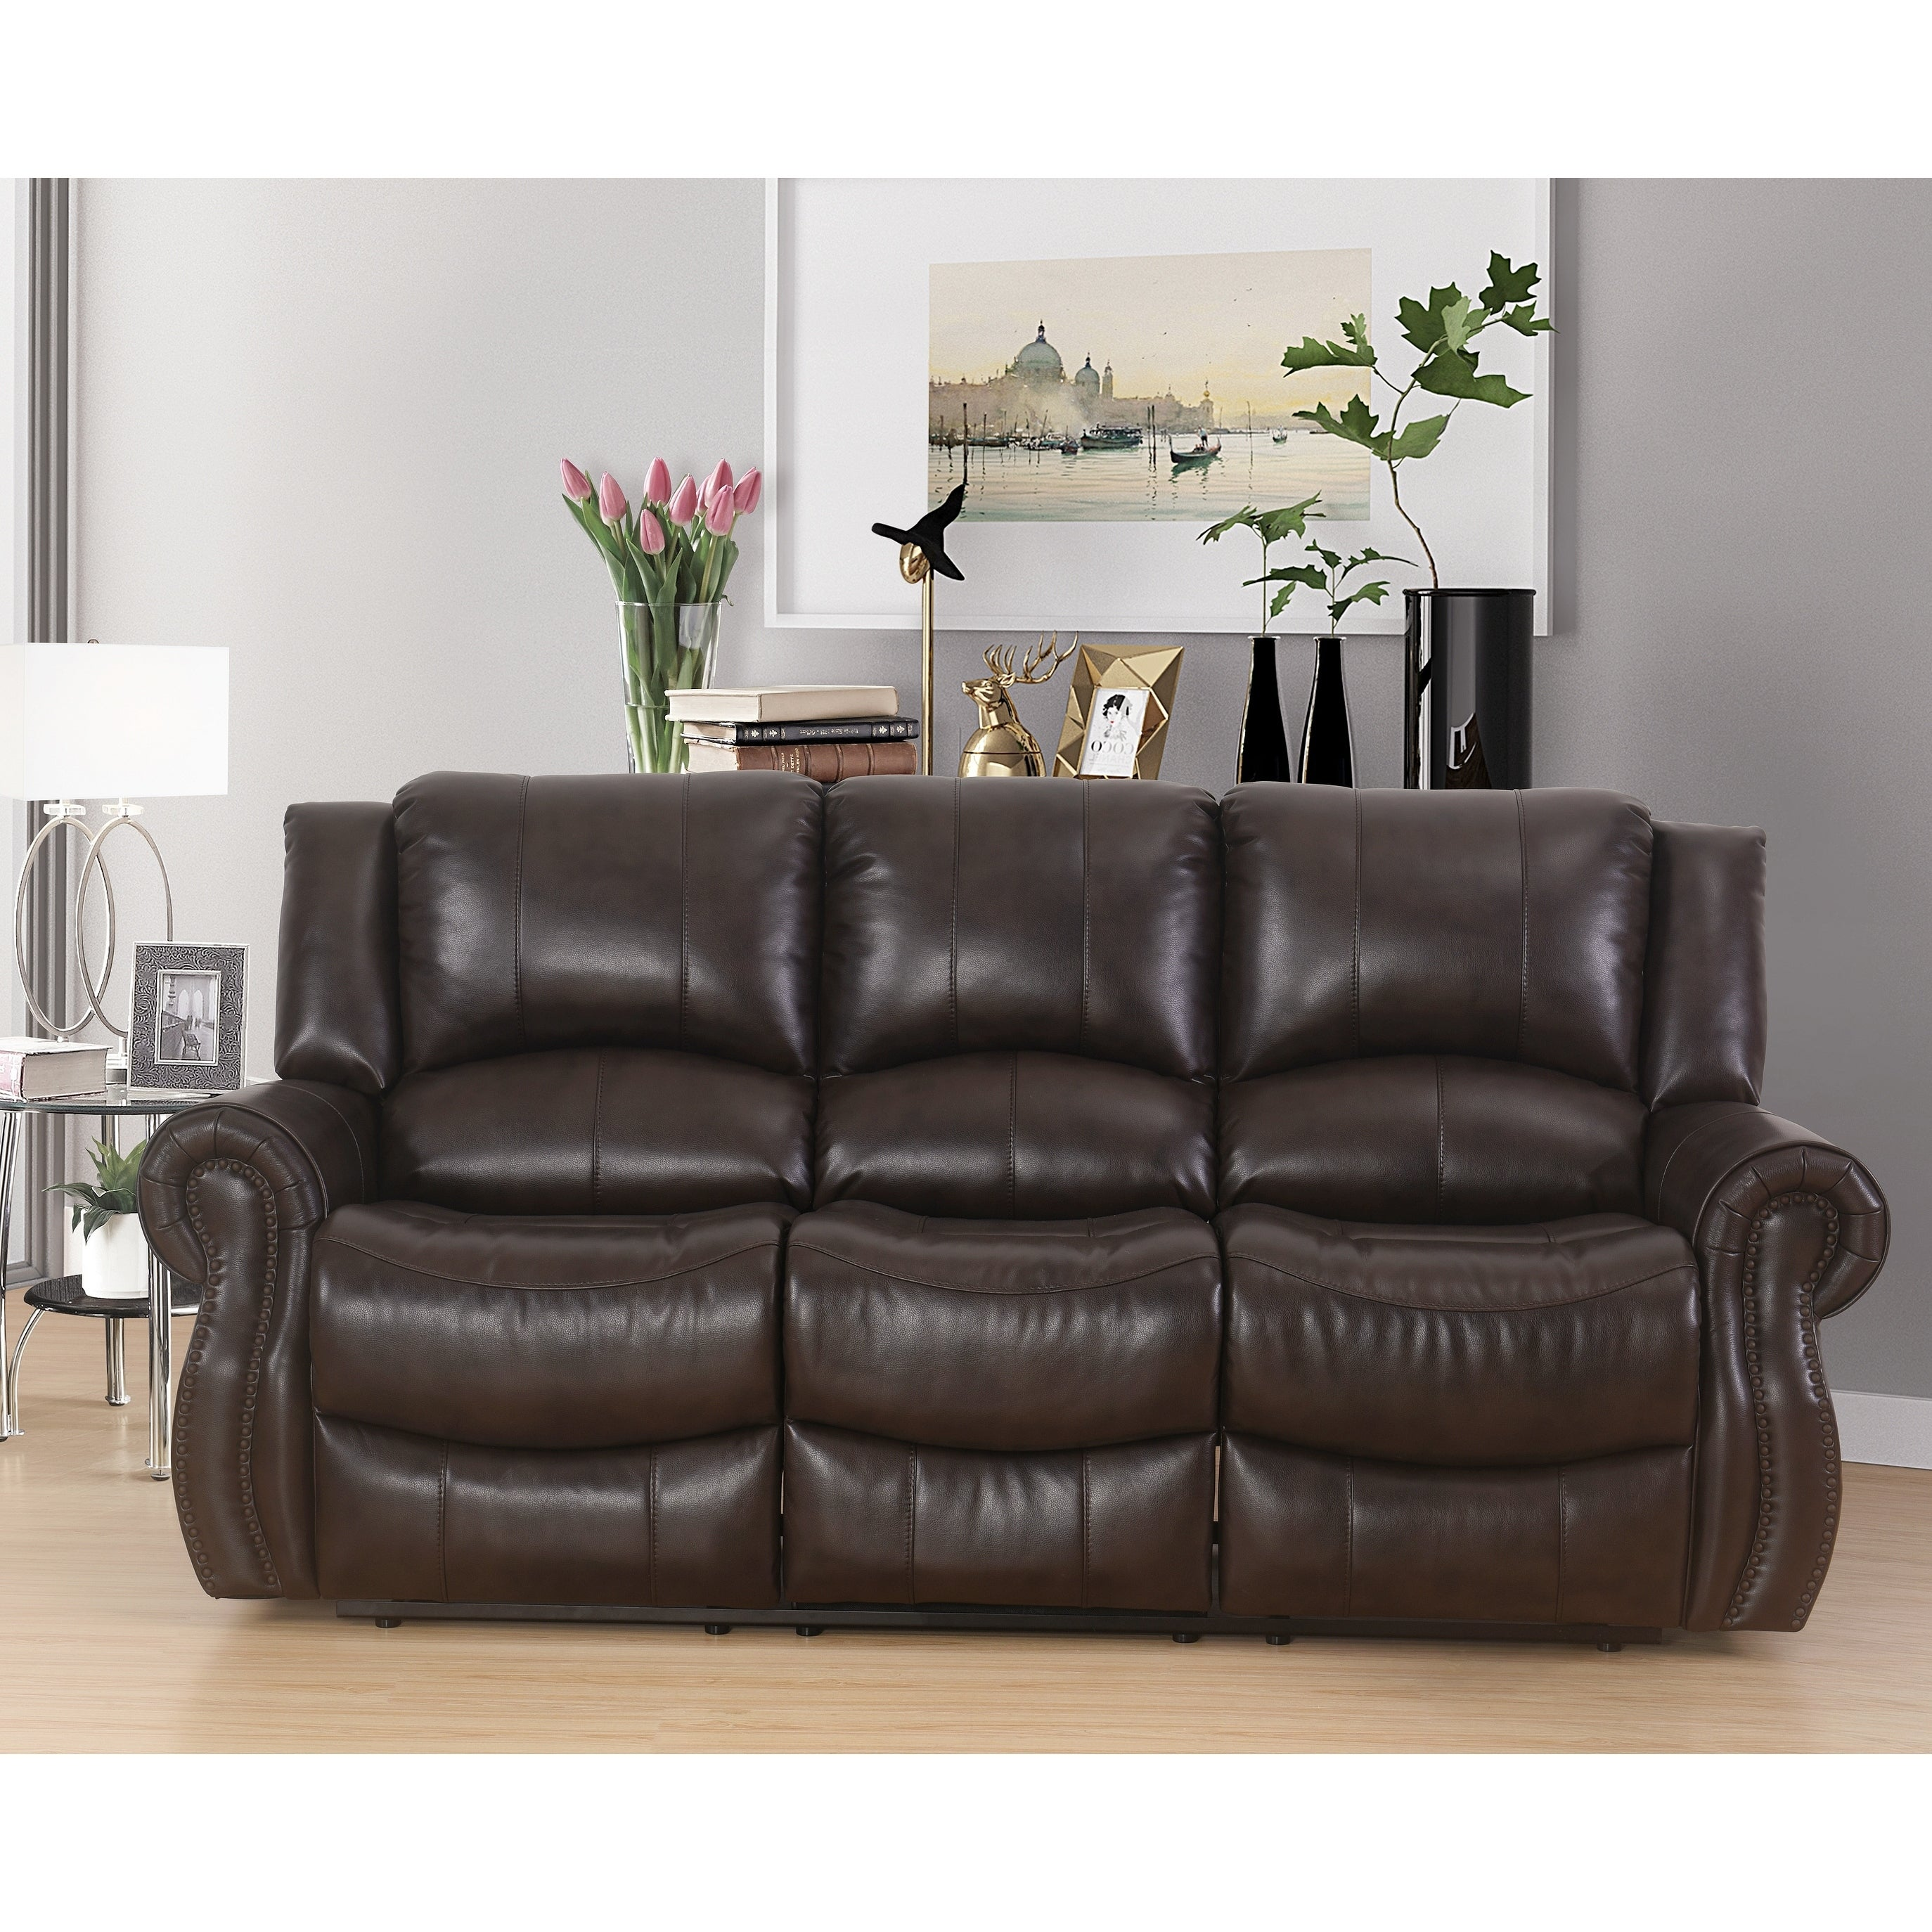 Shop Abbyson Bradford Brown Faux Leather Reclining Sofa On Sale